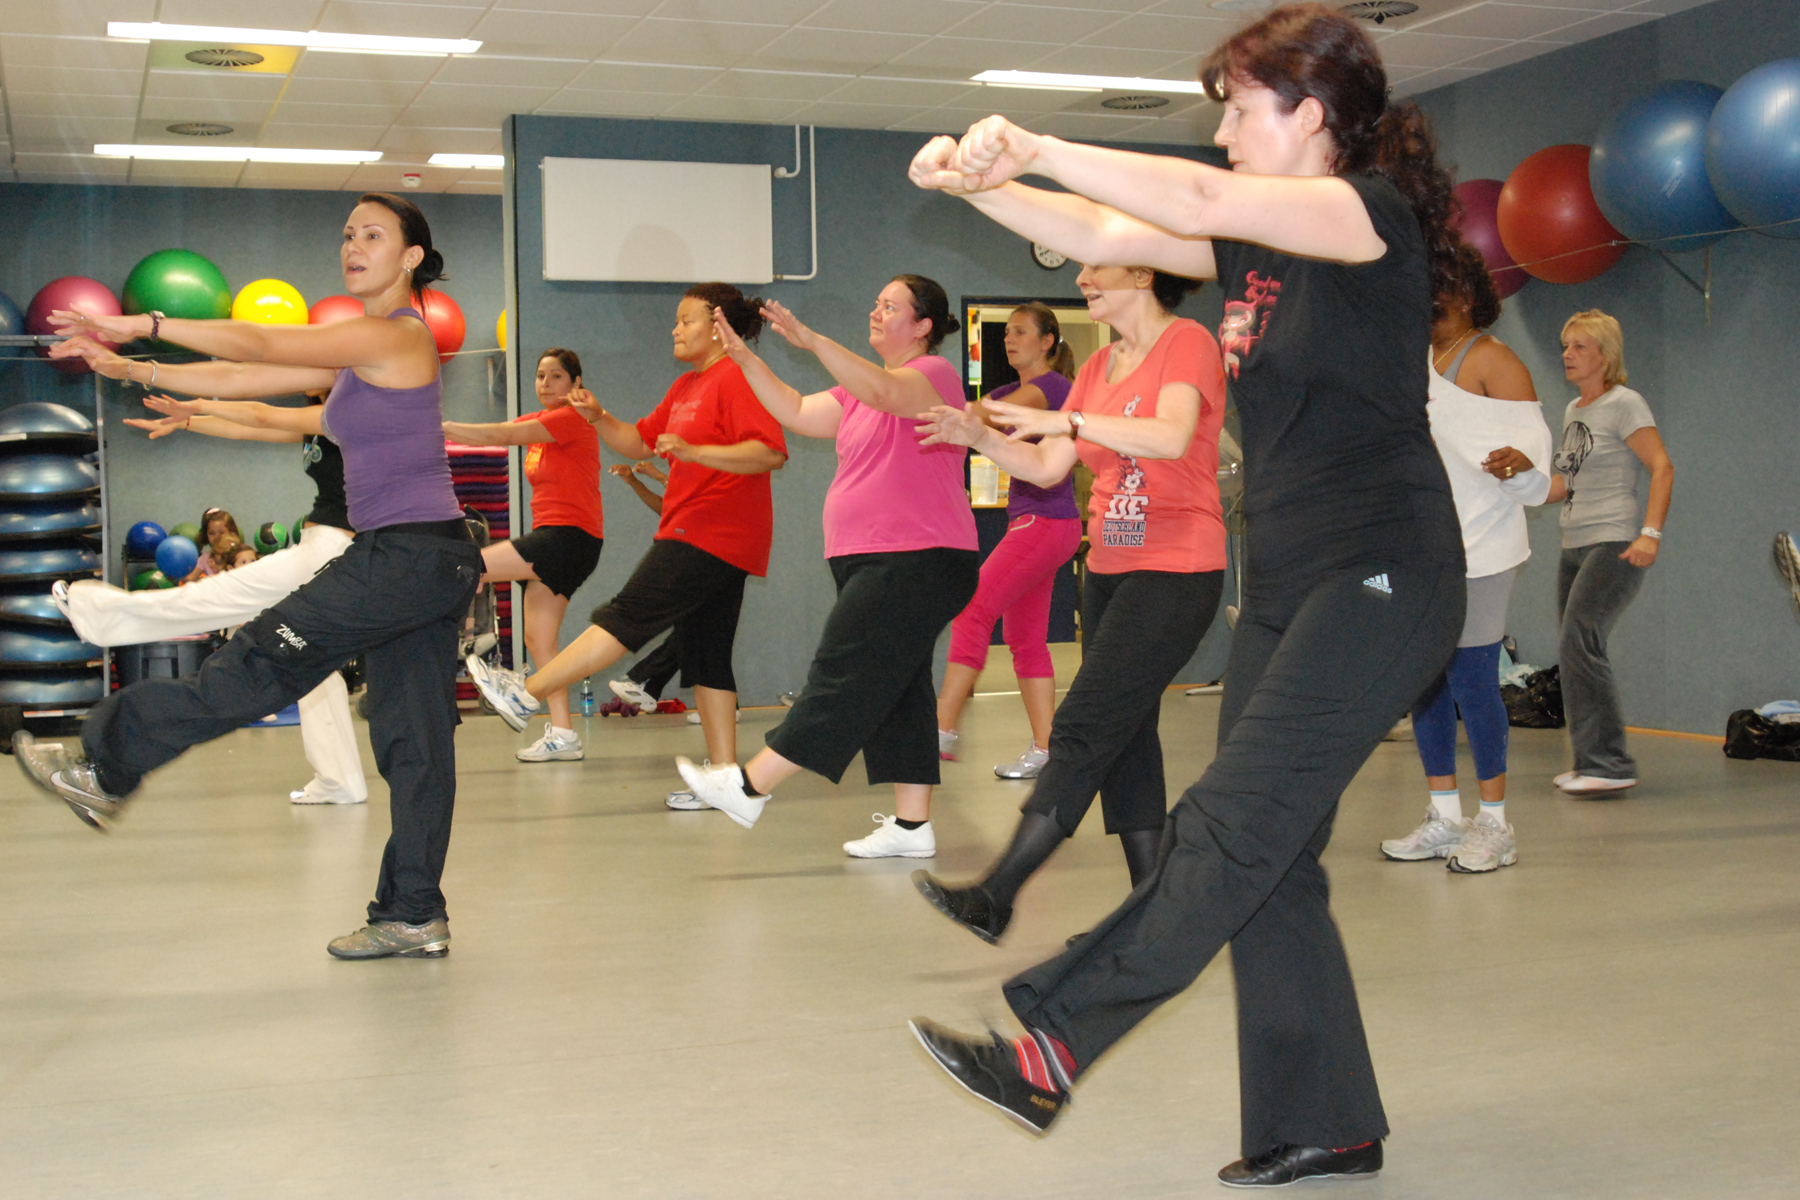 Music and Exercise Together Improve Your Workout